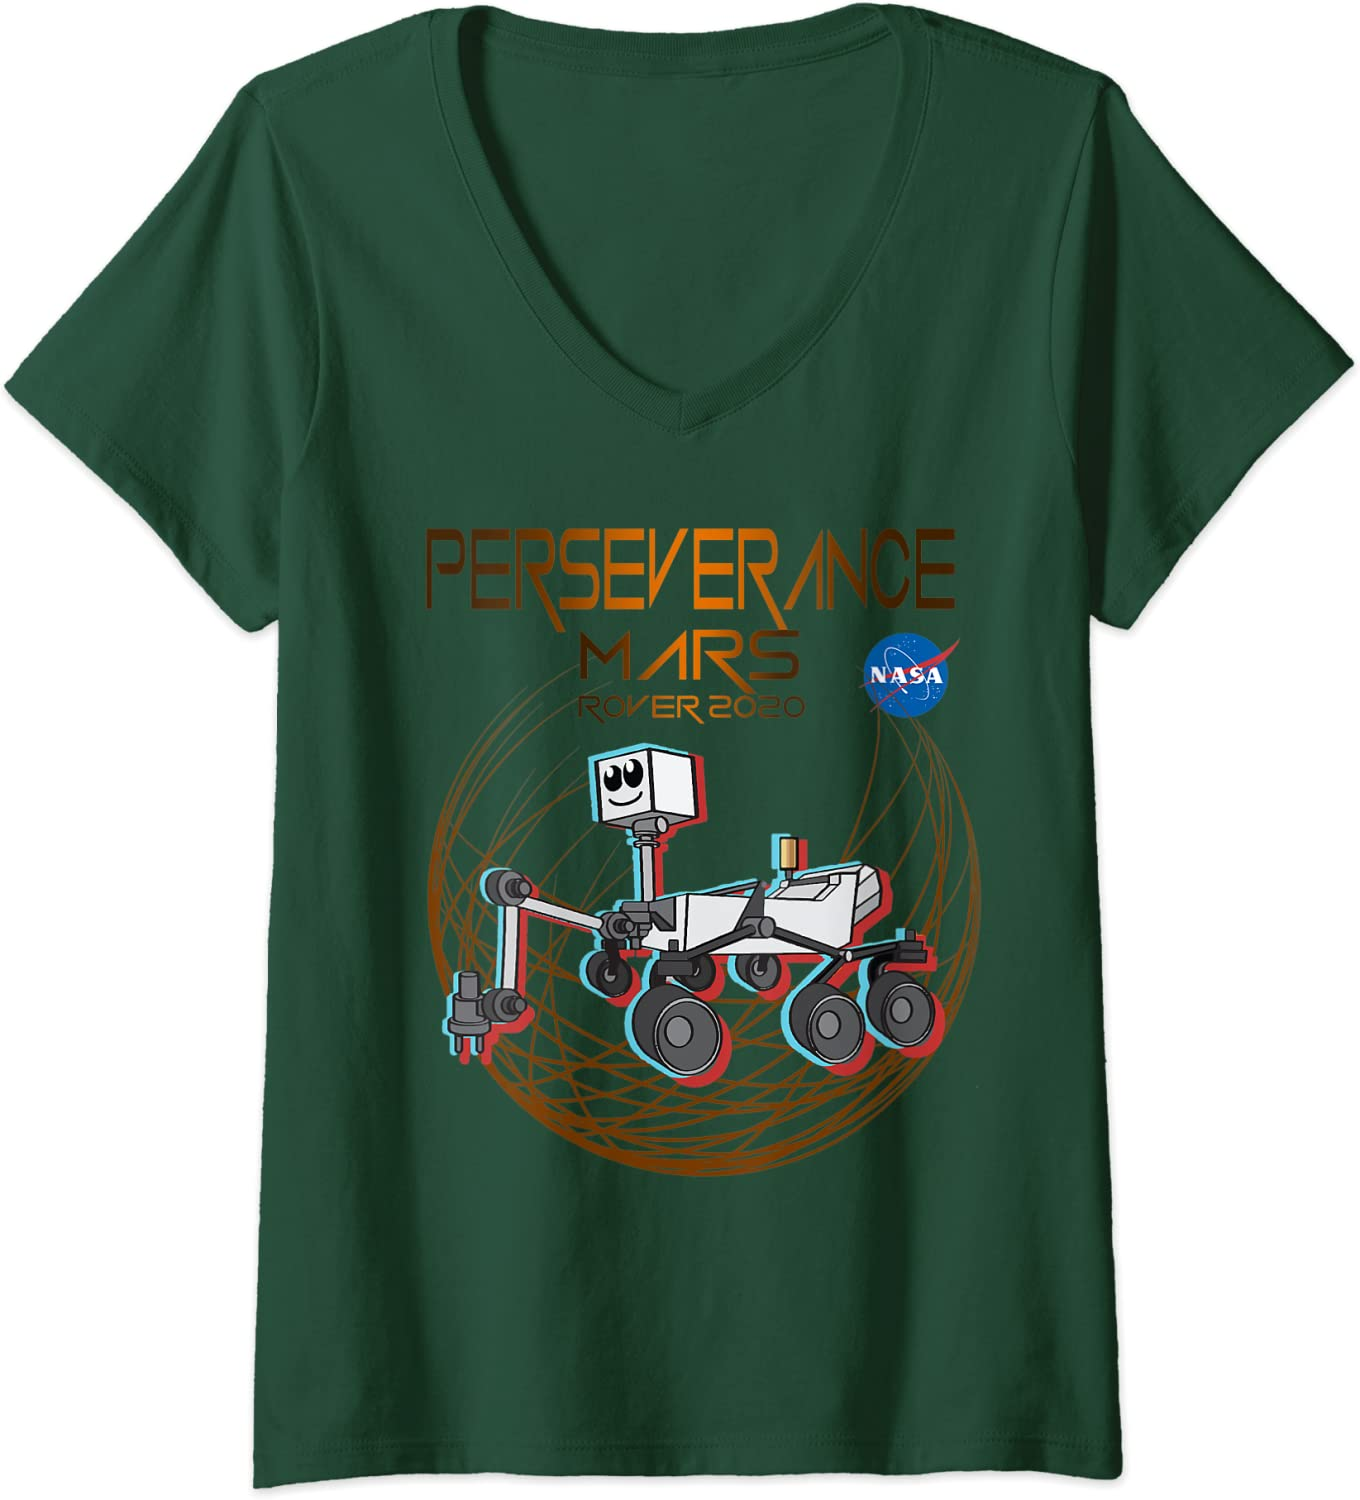 Women/'s Relaxed T-Shirt tee or shirt gift for her Perseverance Mars Dark lettering